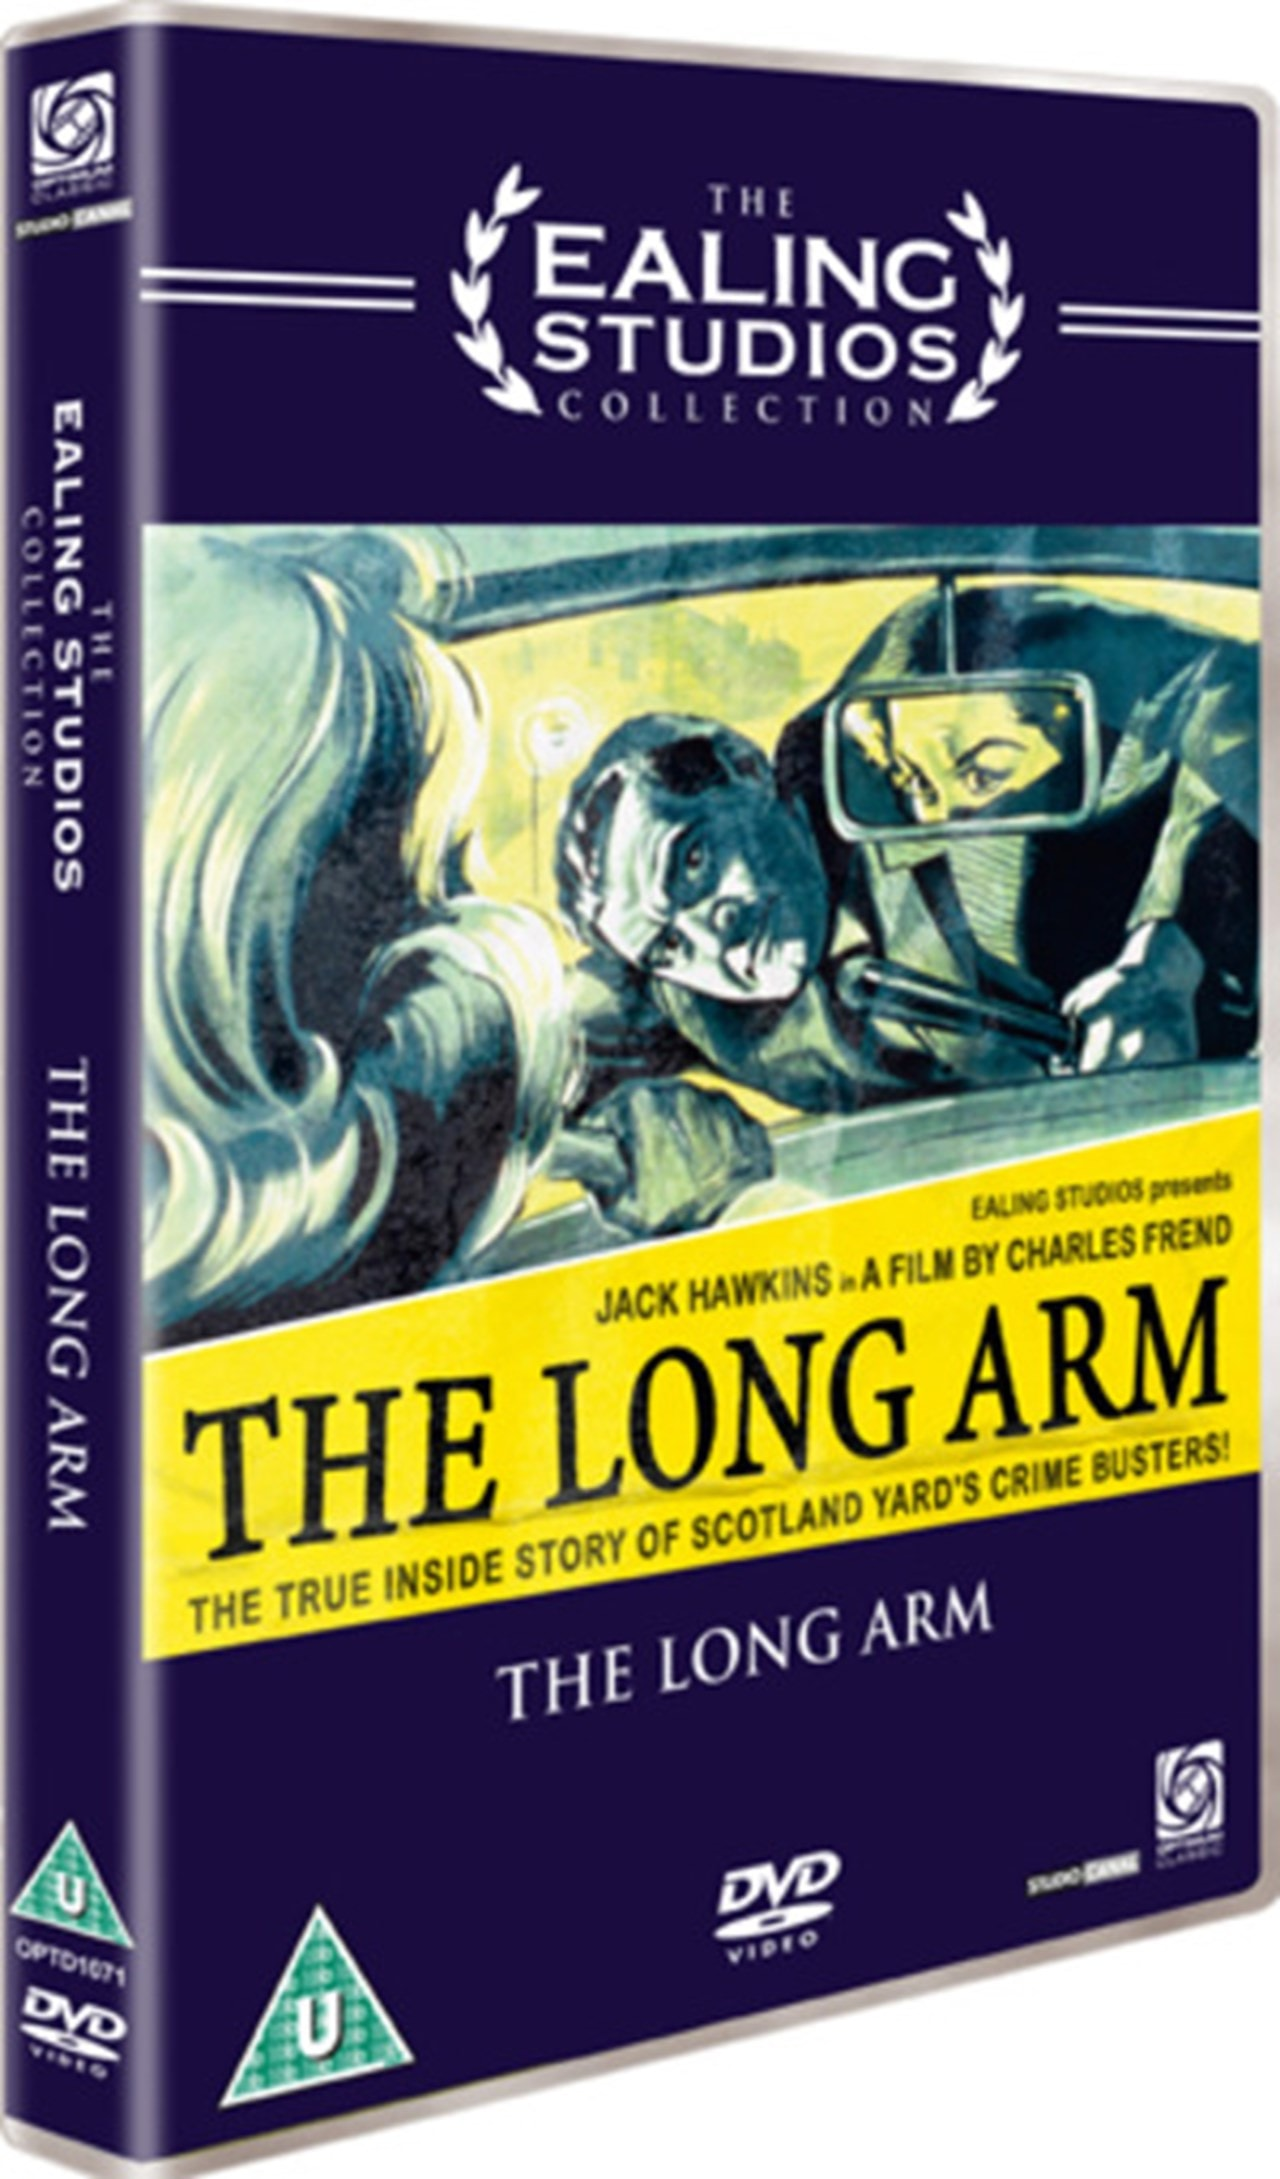 The Long Arm - 1